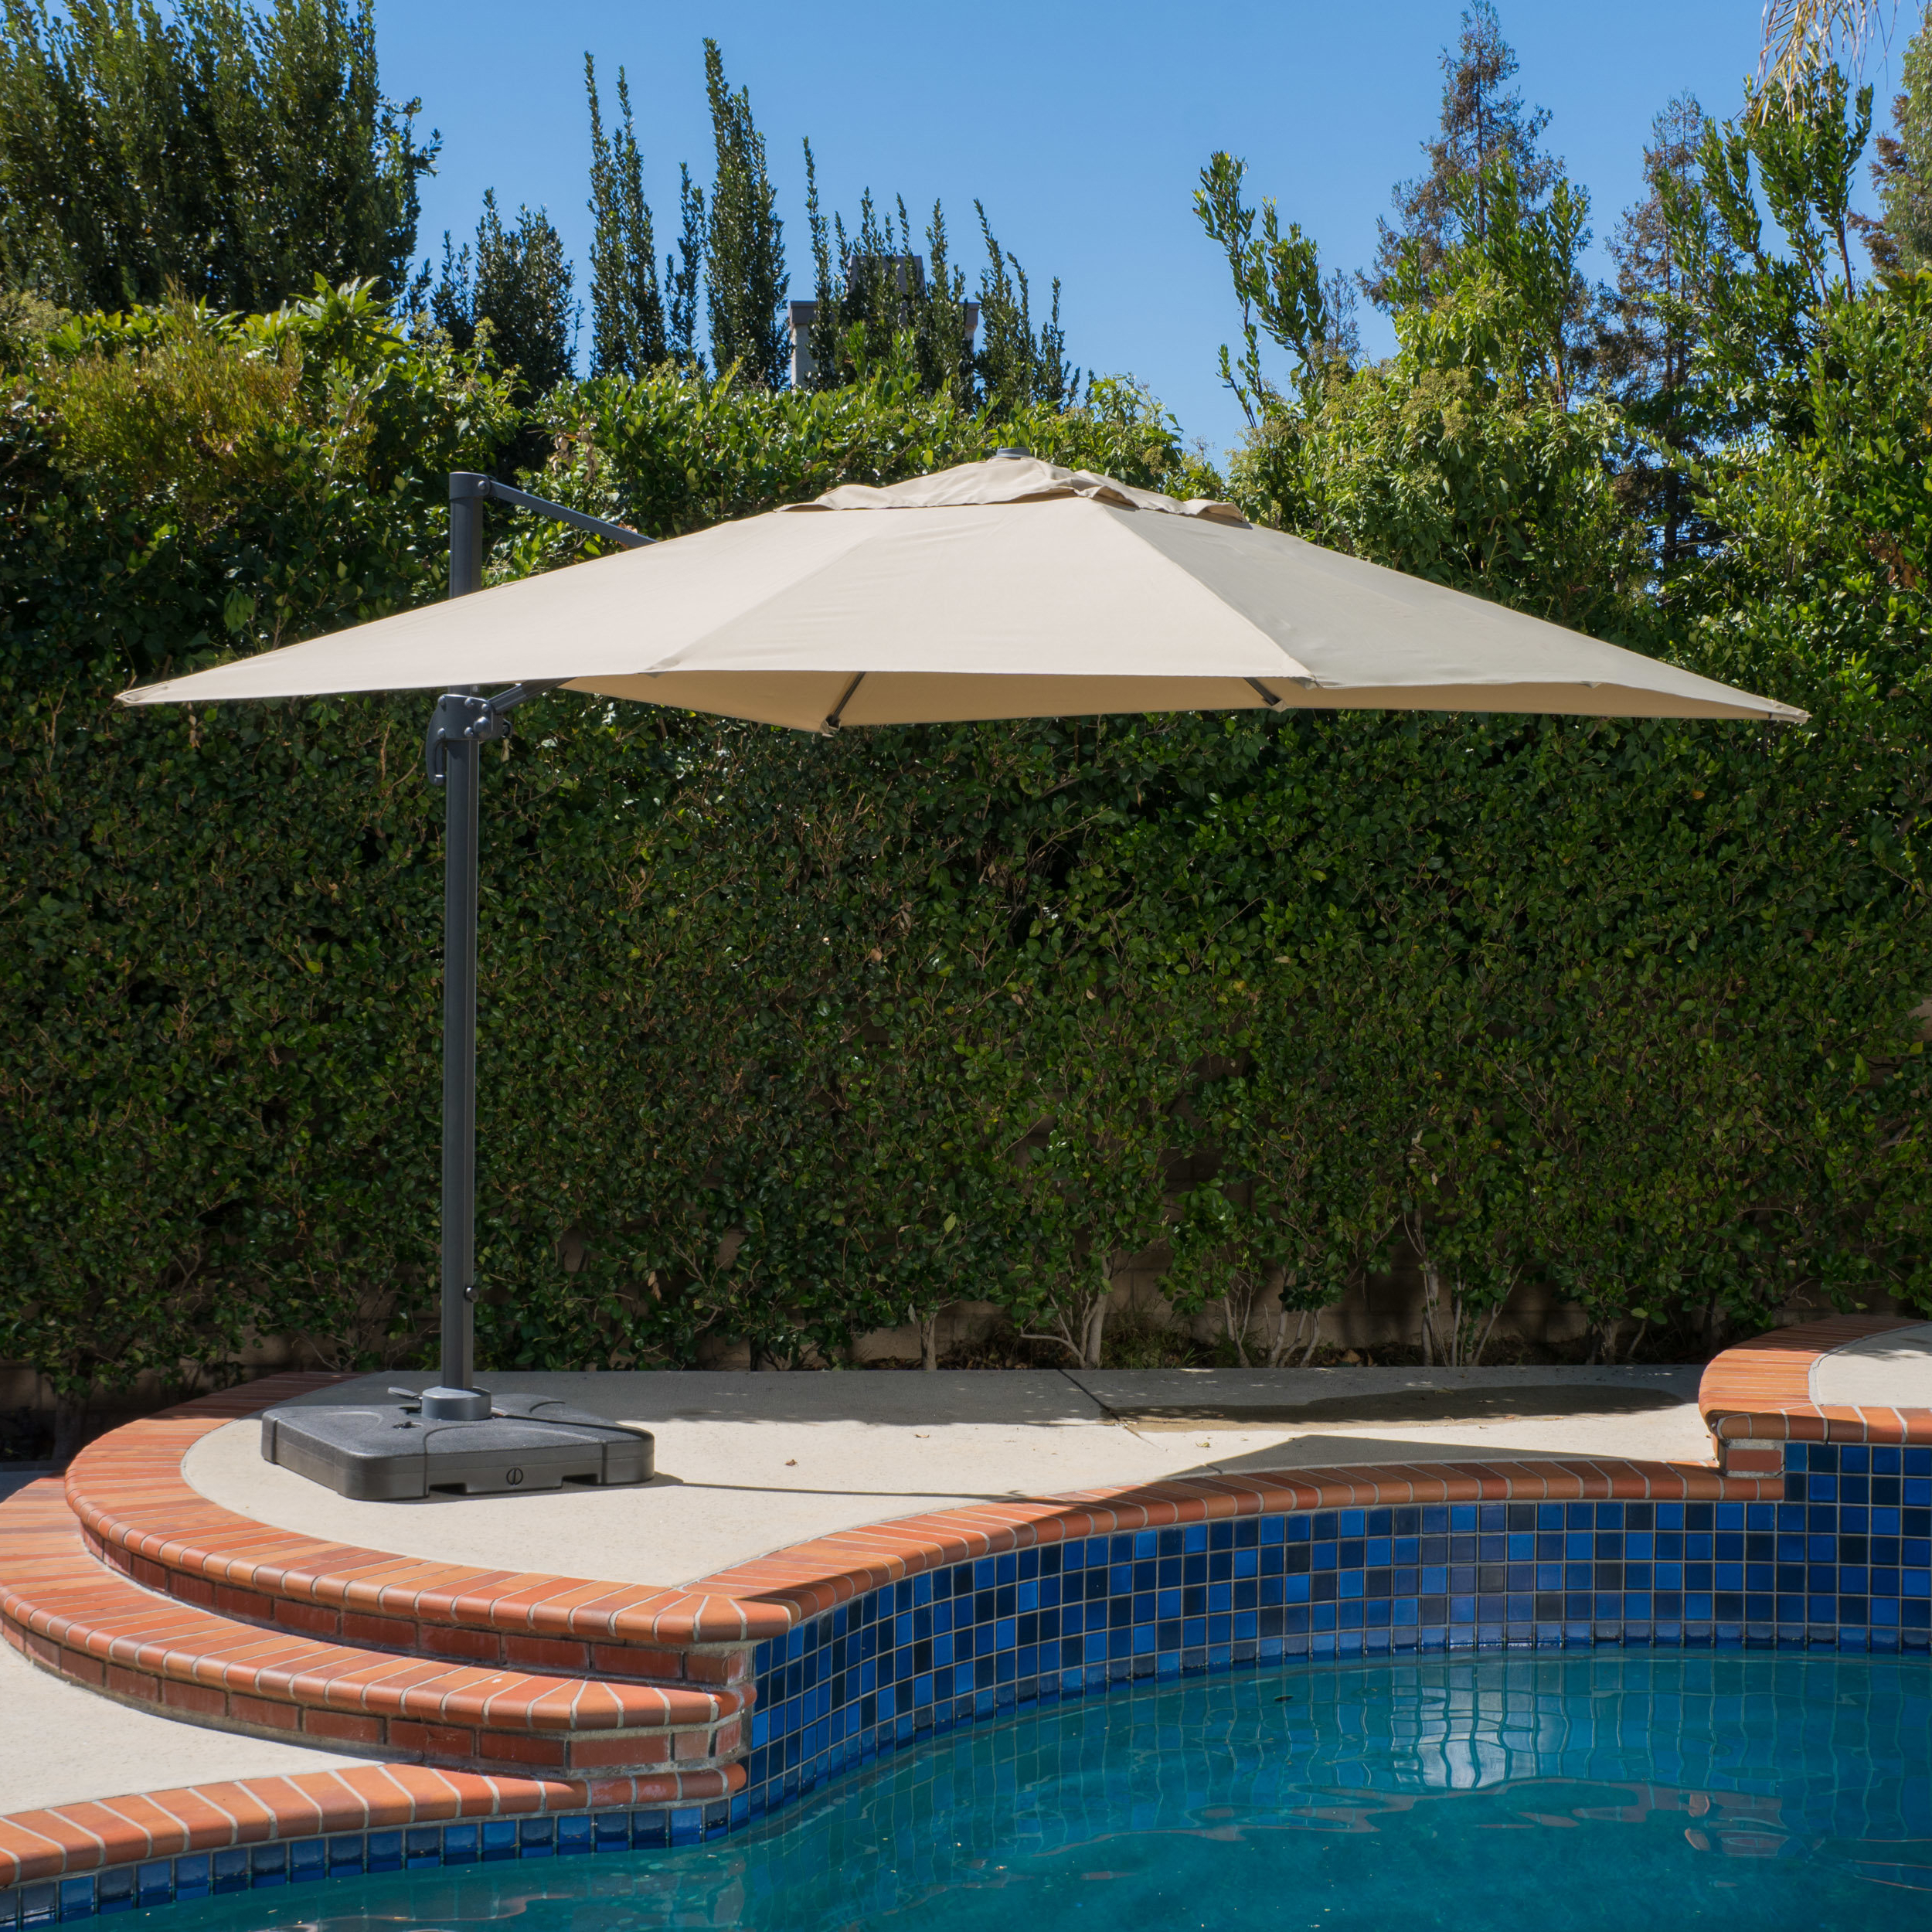 Frederick 10' Square Cantilever Umbrella In Fashionable Windell Square Cantilever Umbrellas (View 7 of 20)